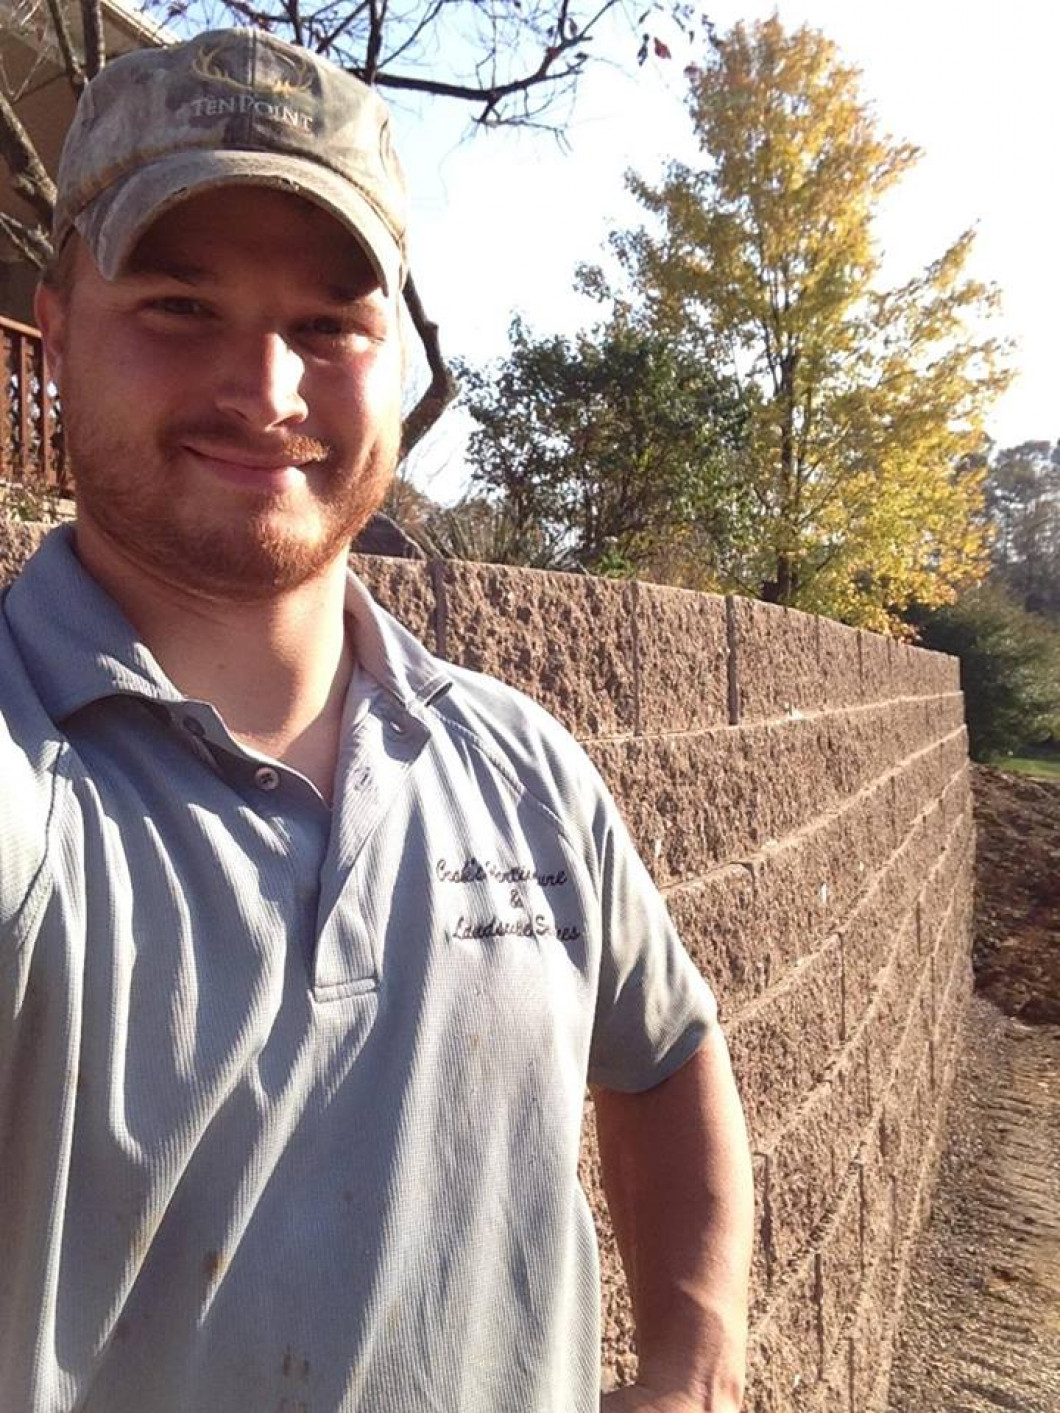 Cook's Horticulture & Landscaping Services | Selinsgrove, PA